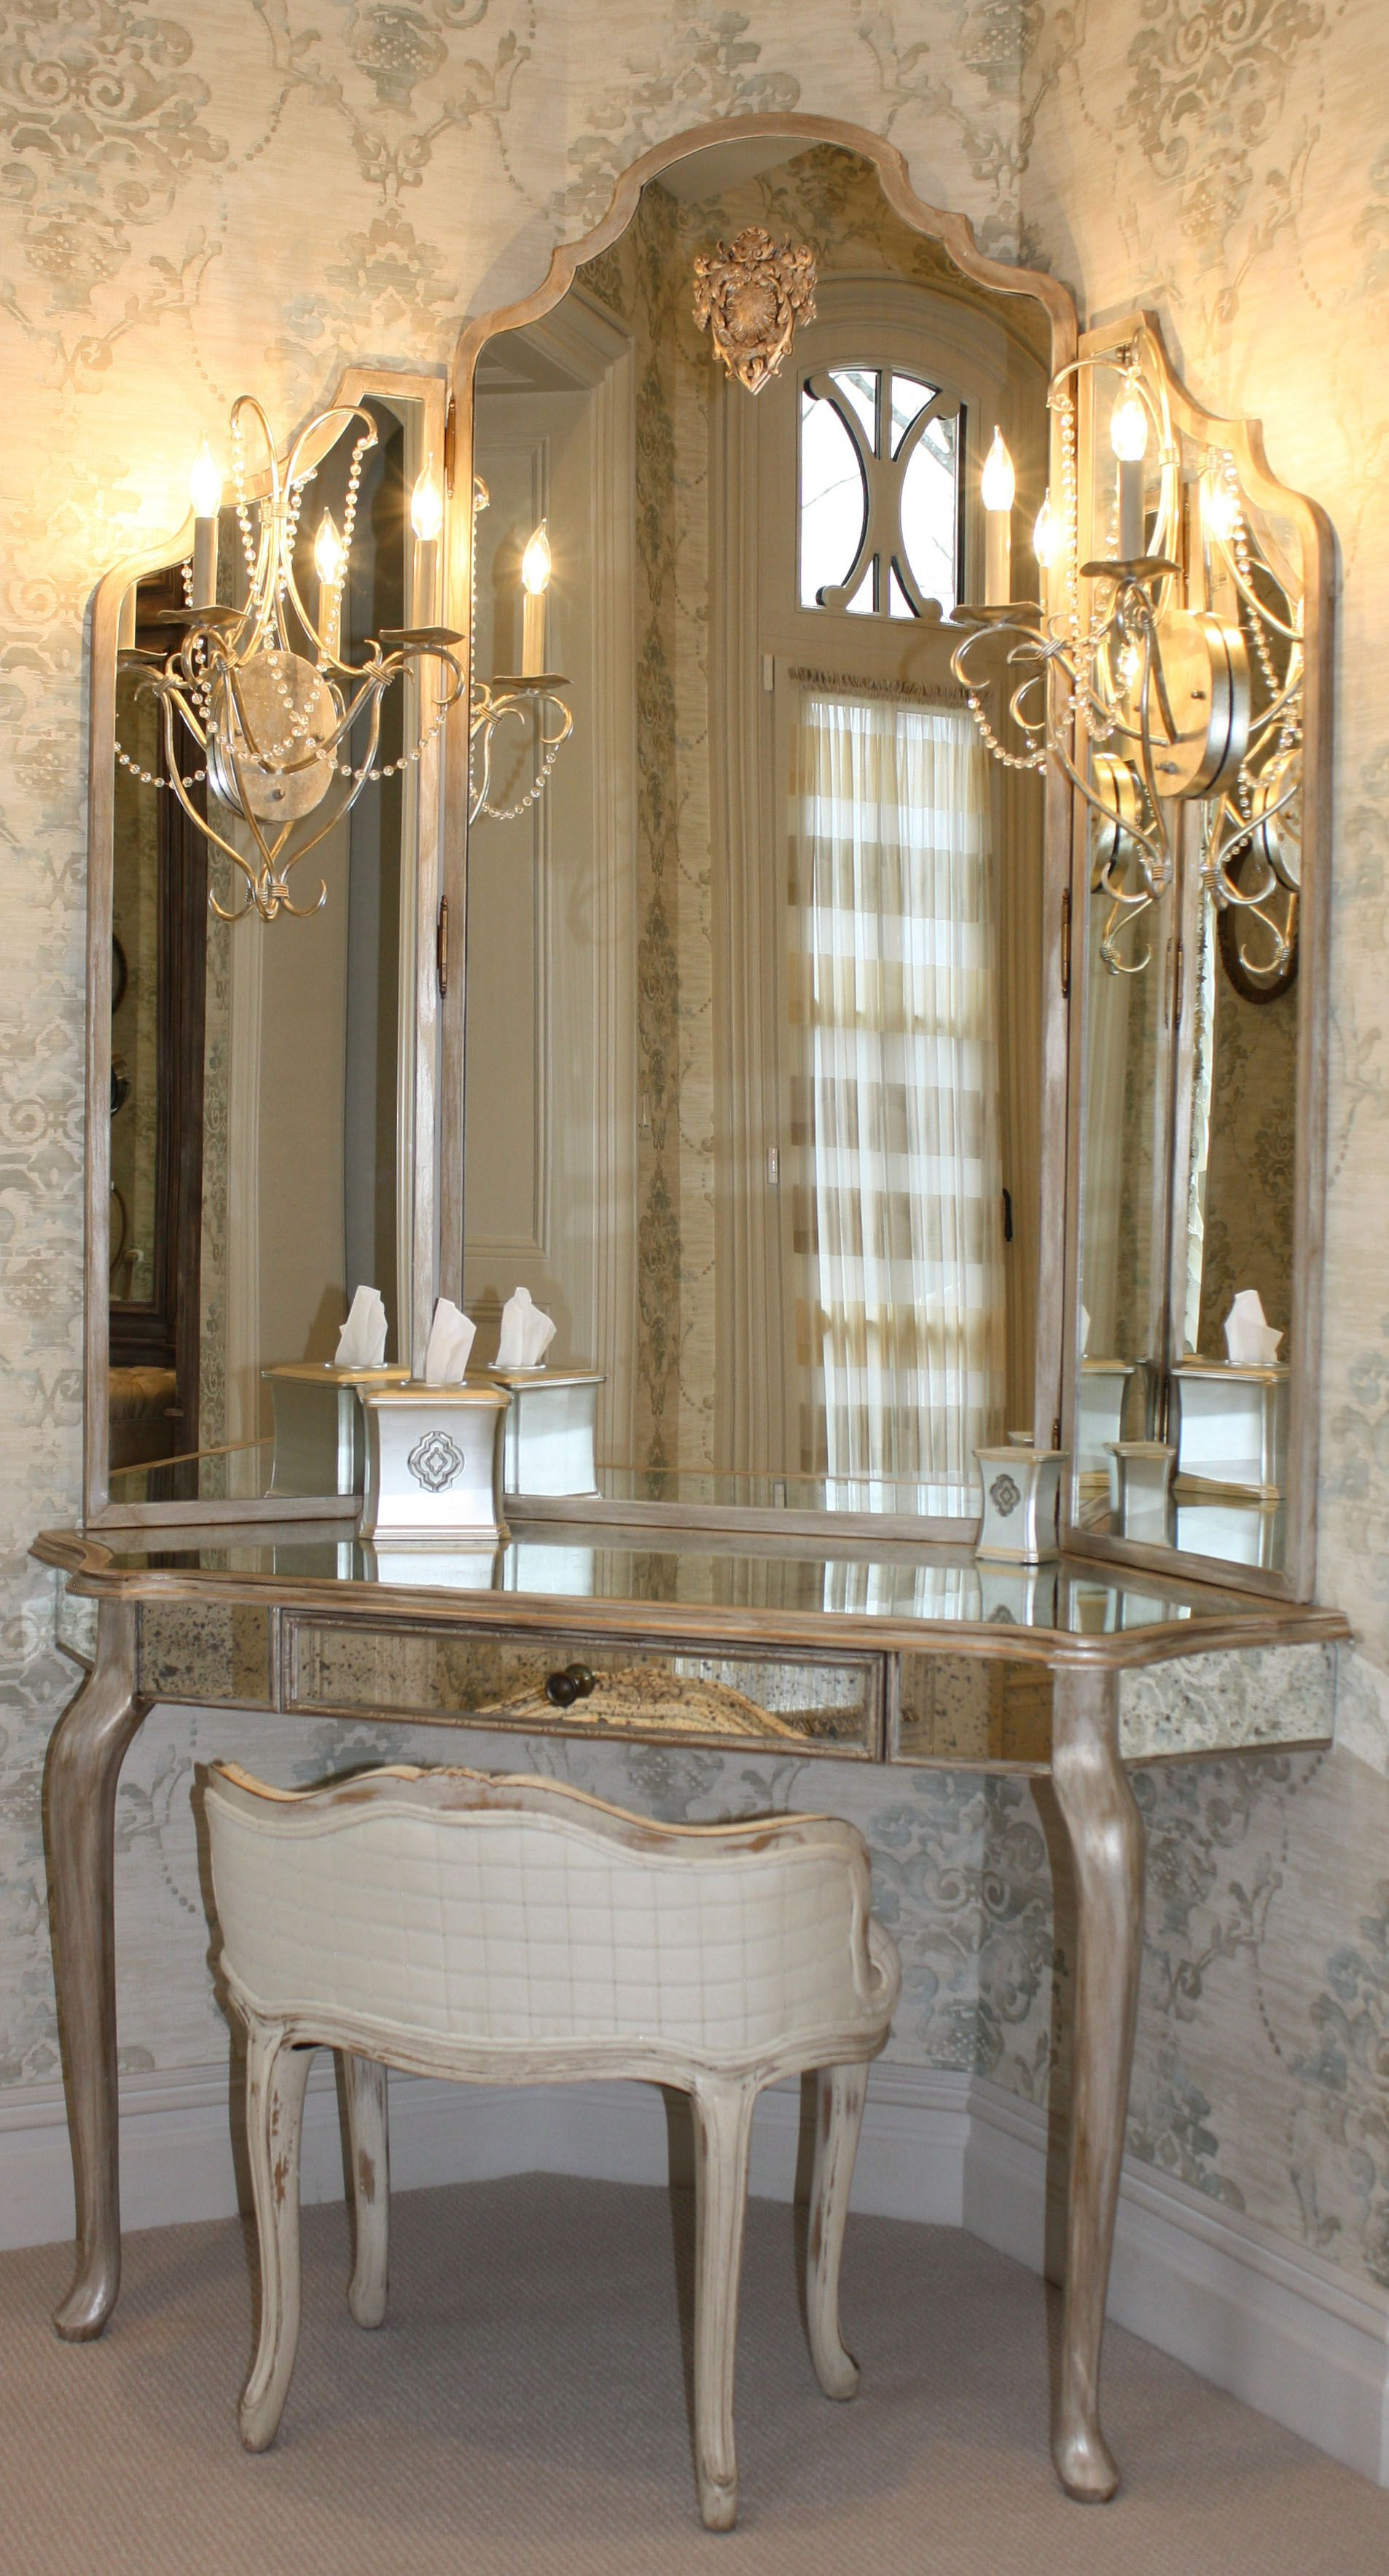 Guilded French Dressing Table With Three Way Mirror Can You Say Vintage Glamour